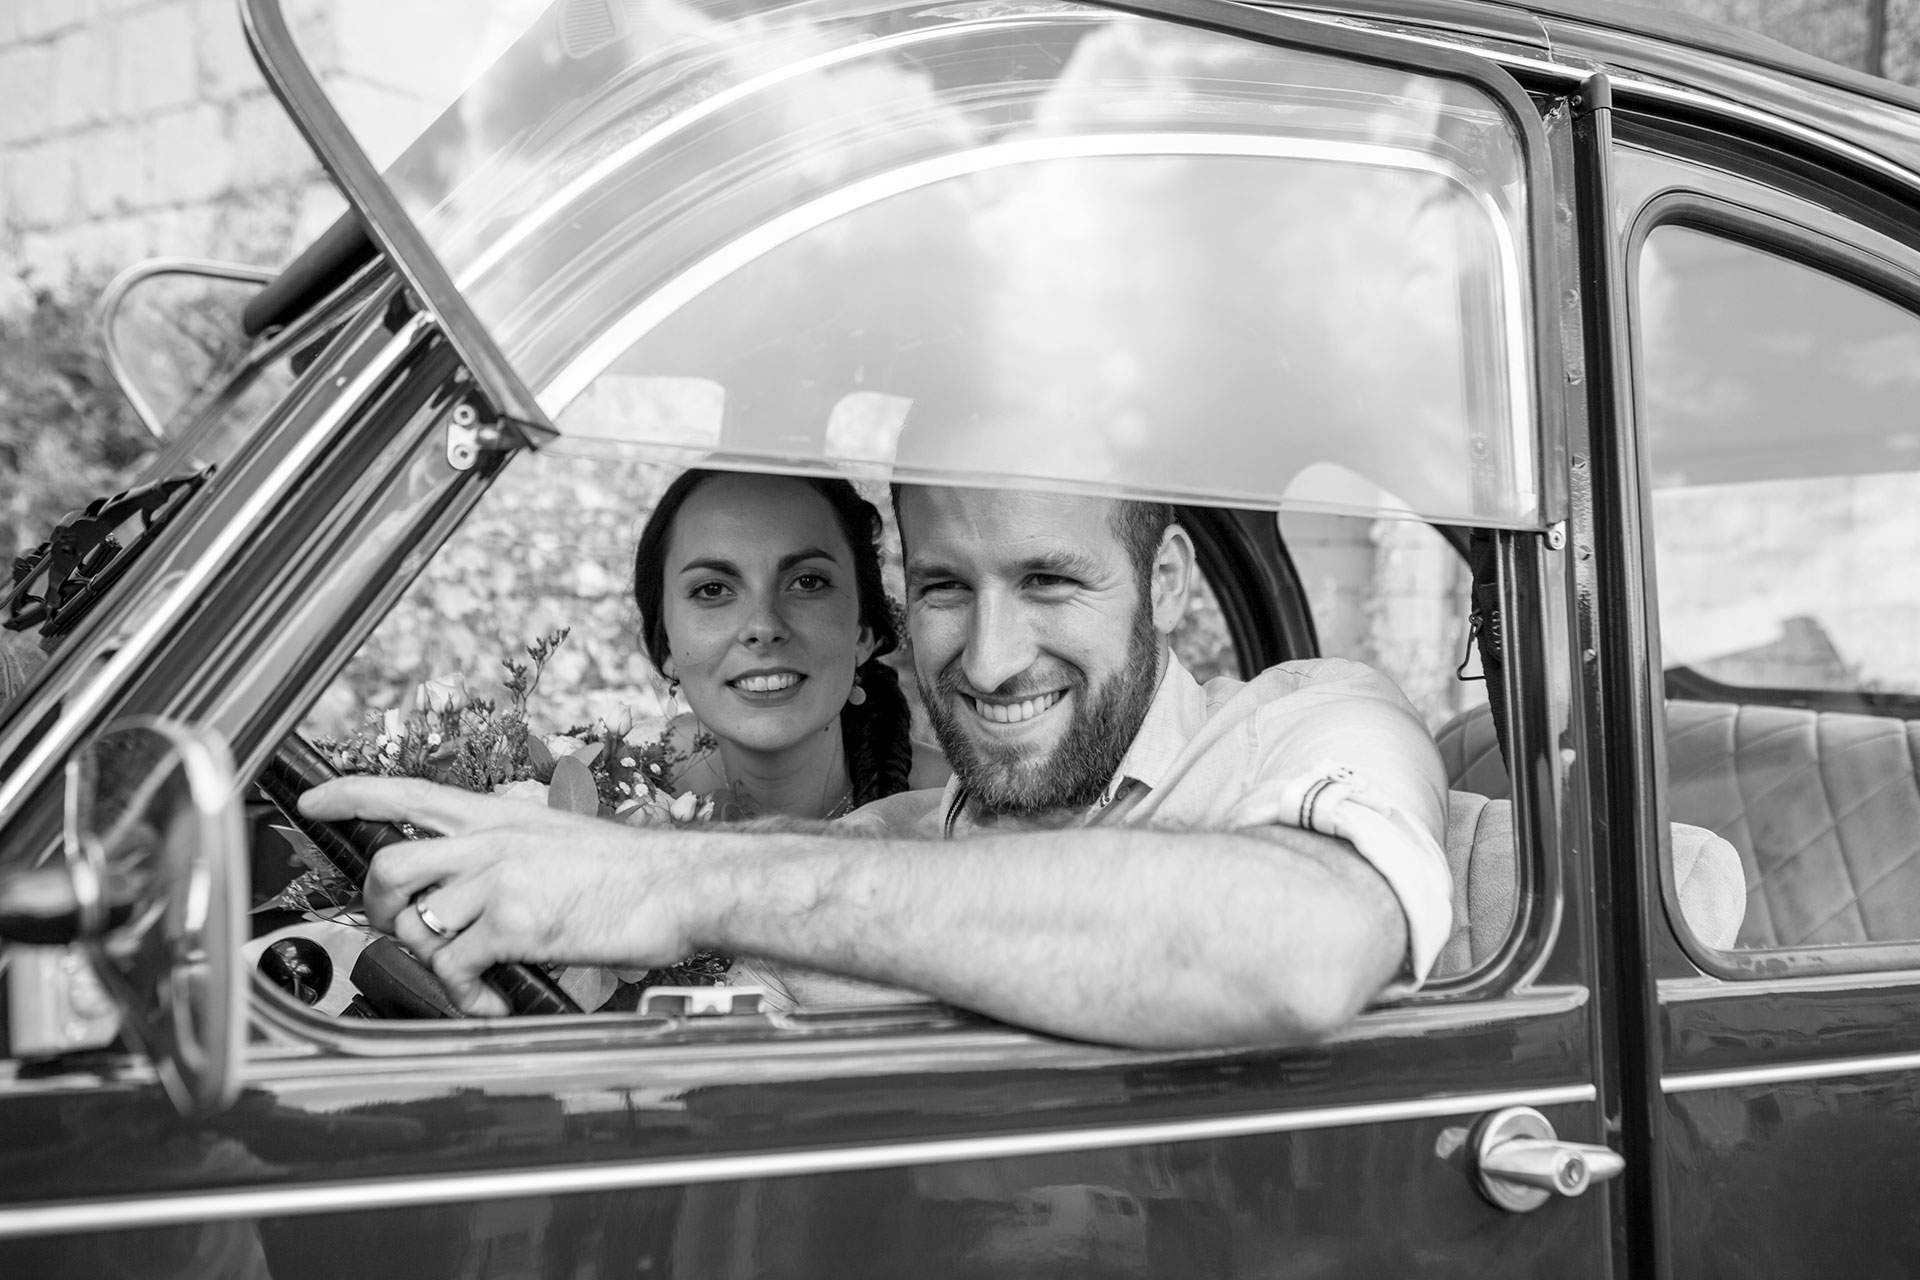 particuliers-evenements-mariage-oui-carla&jeremy-58